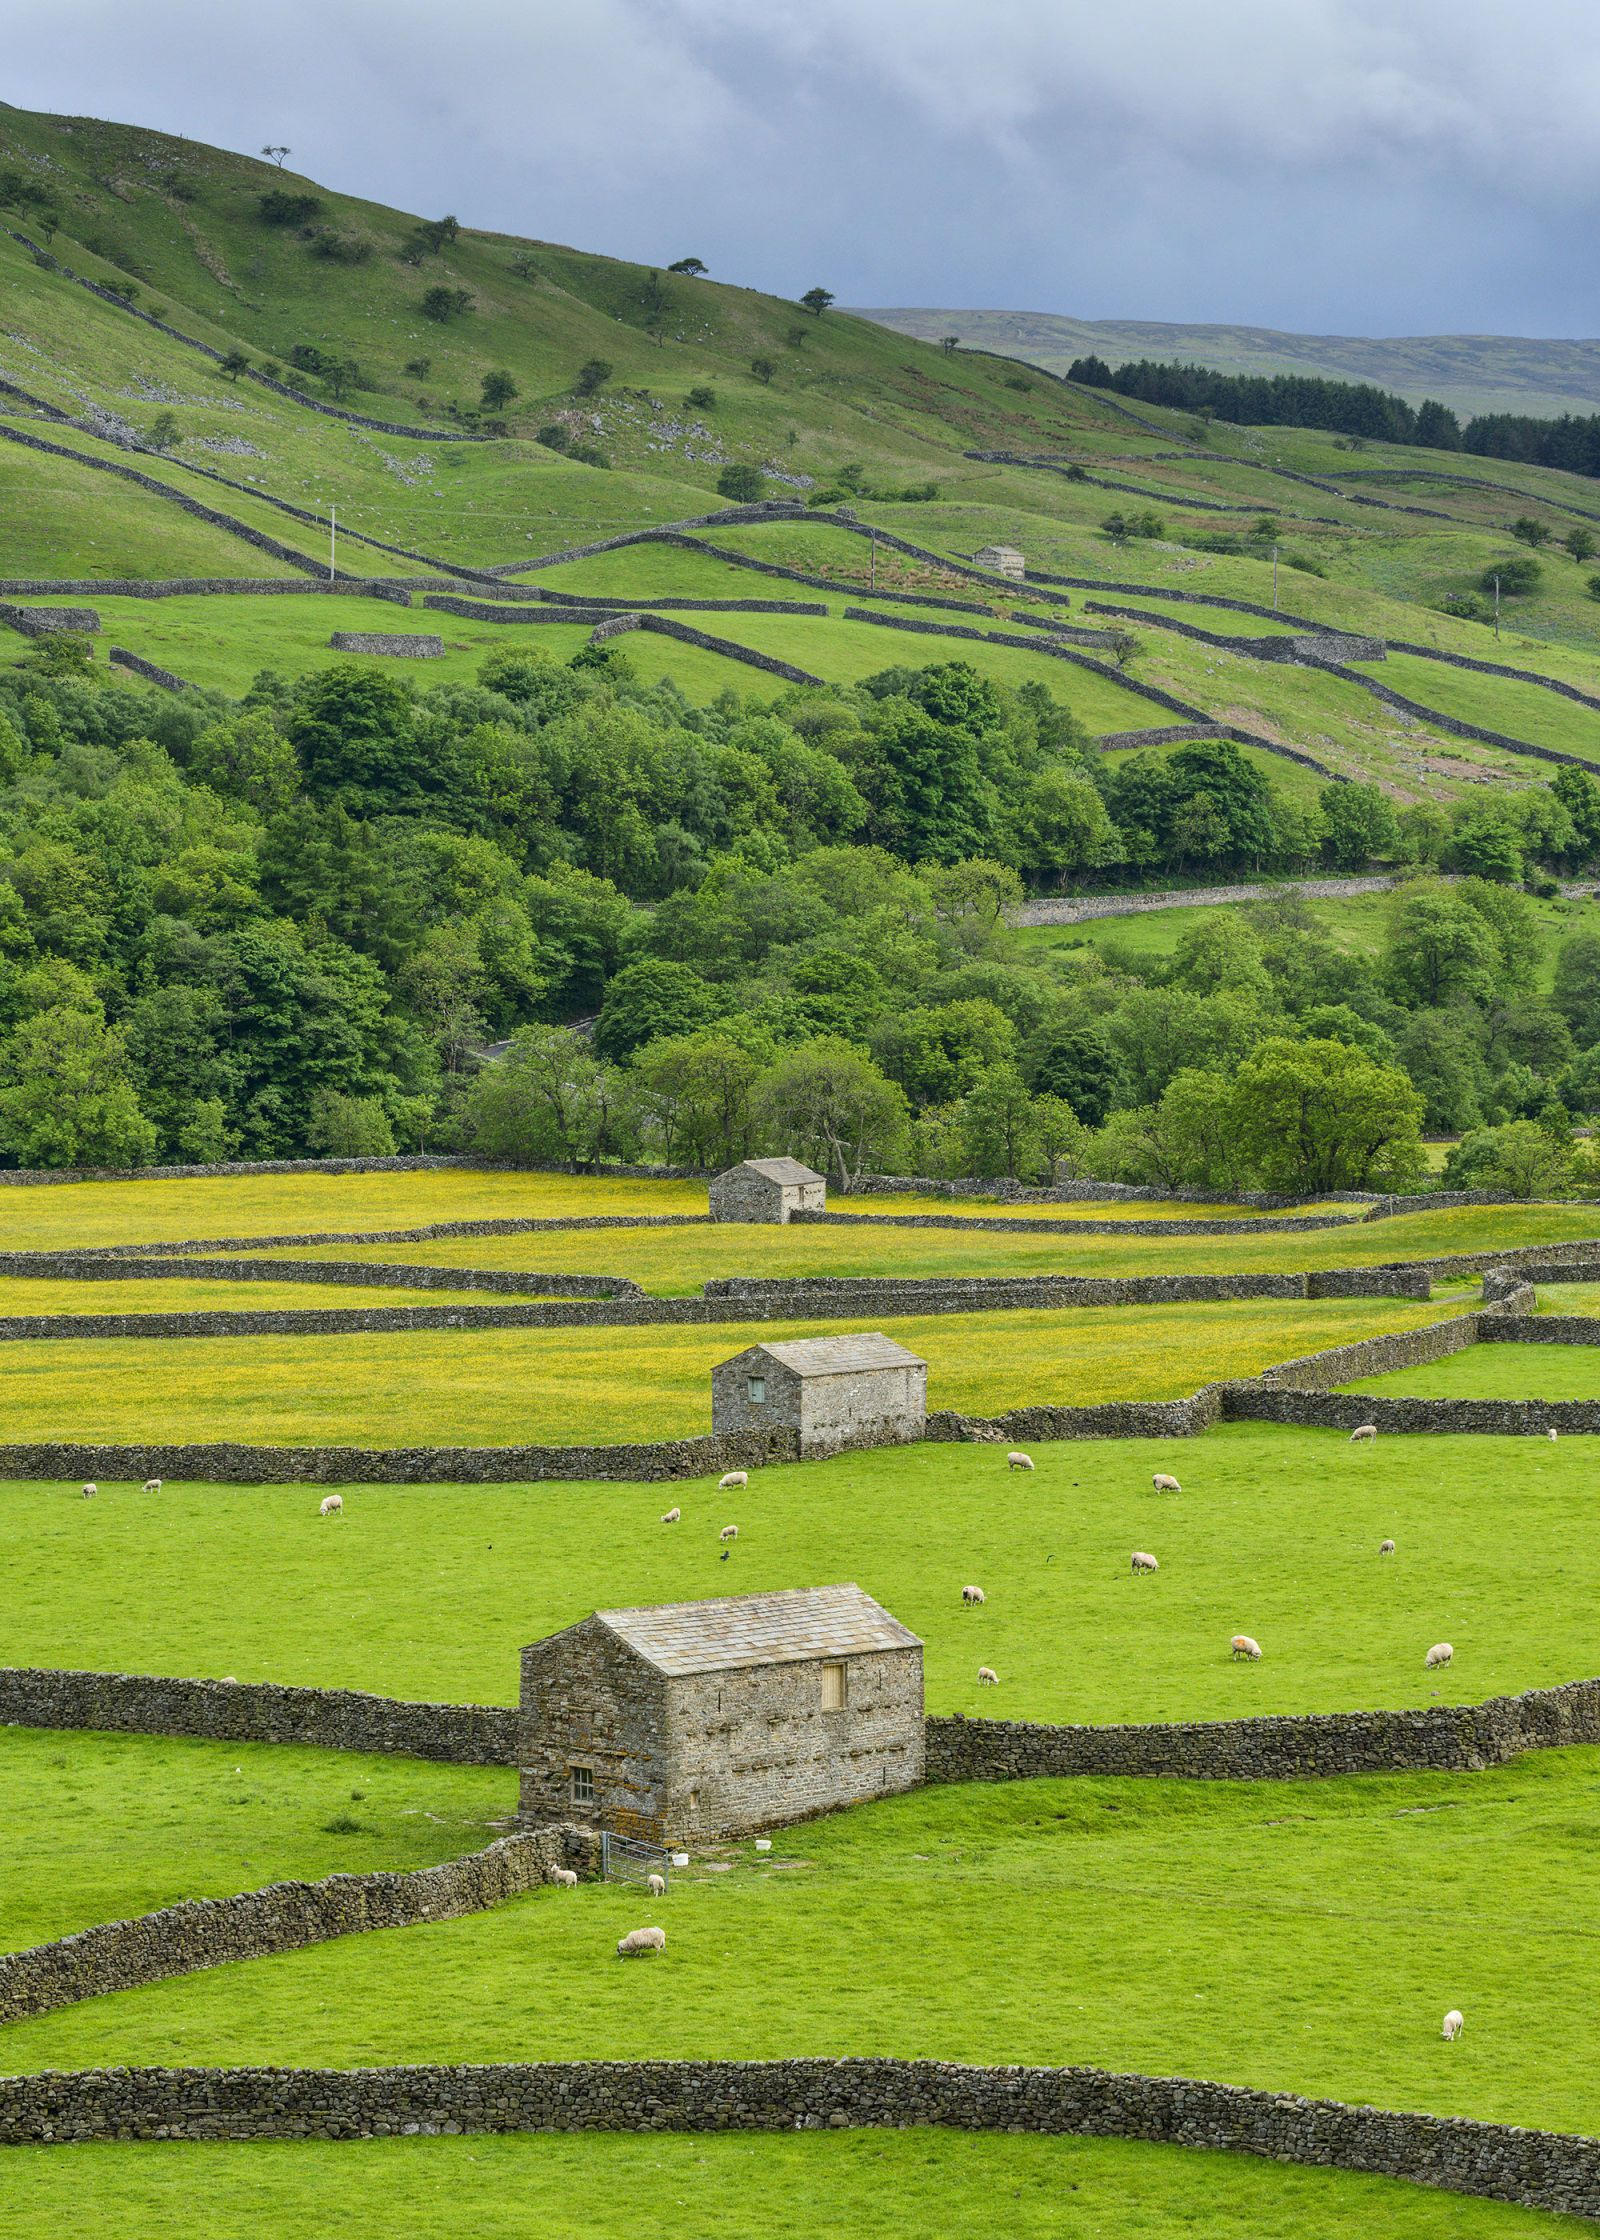 14 pictures of Yorkshire that are so beautiful it hurts | Old ...